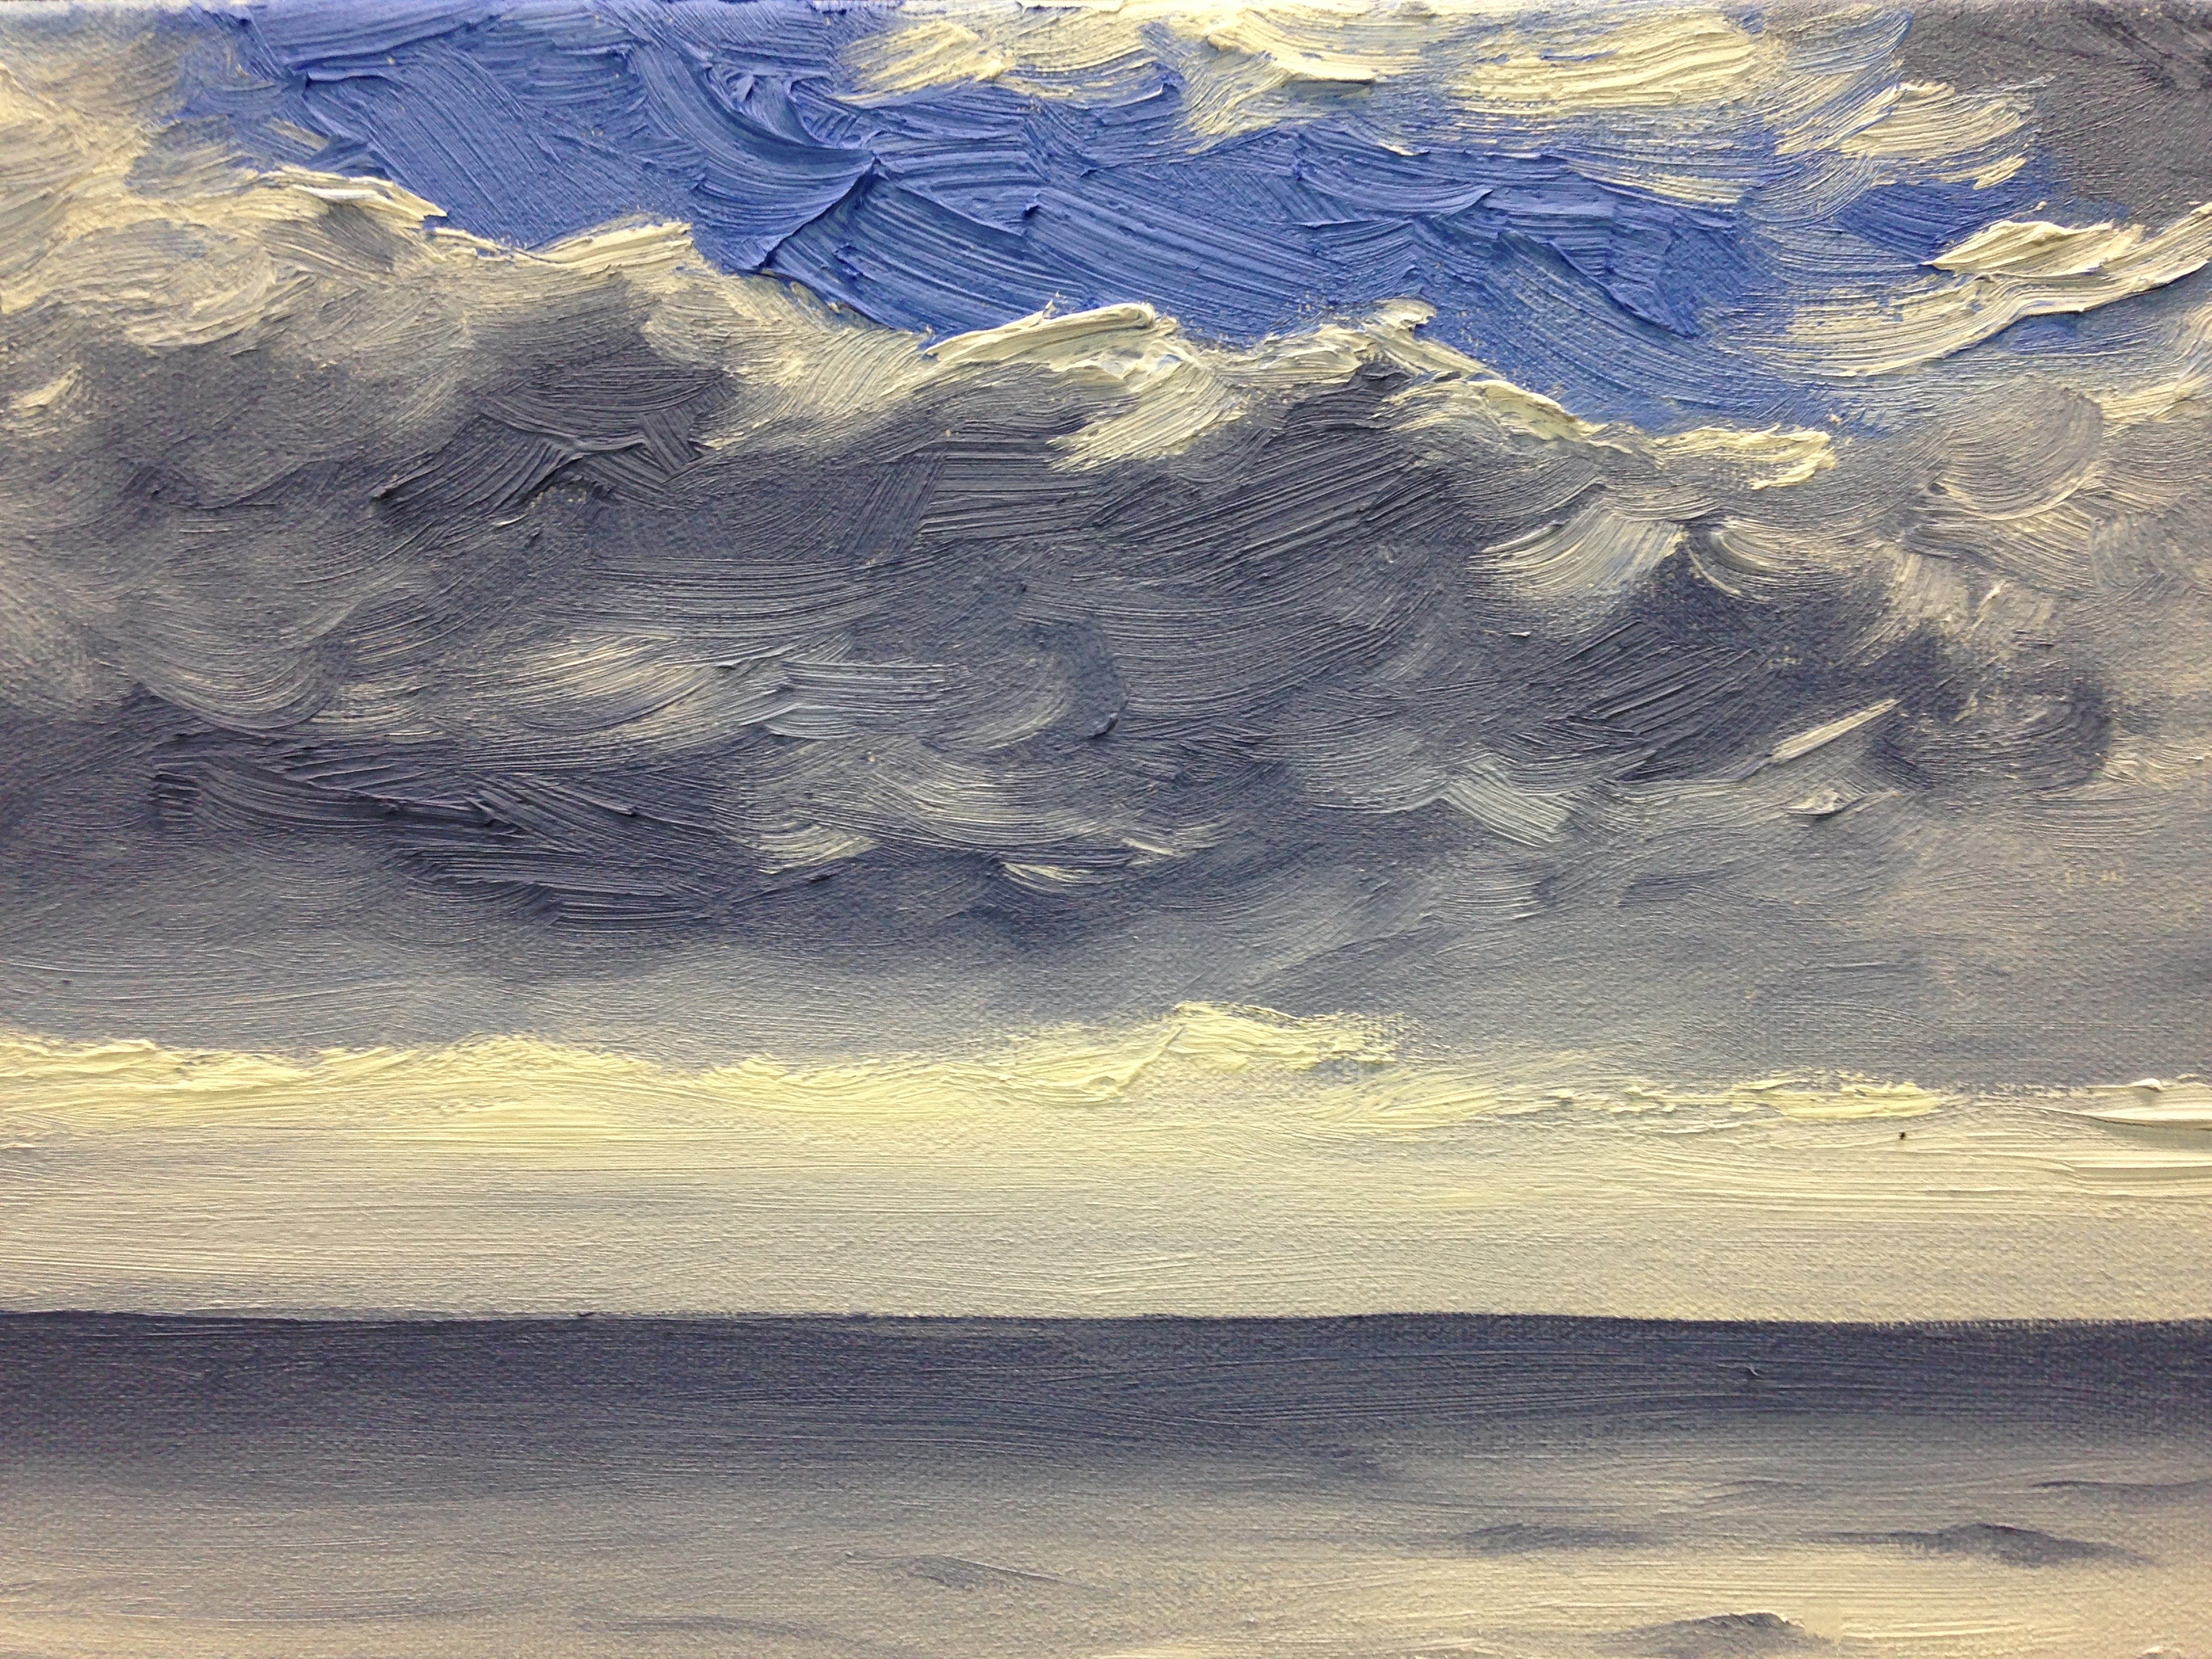 Clouds over the ocean